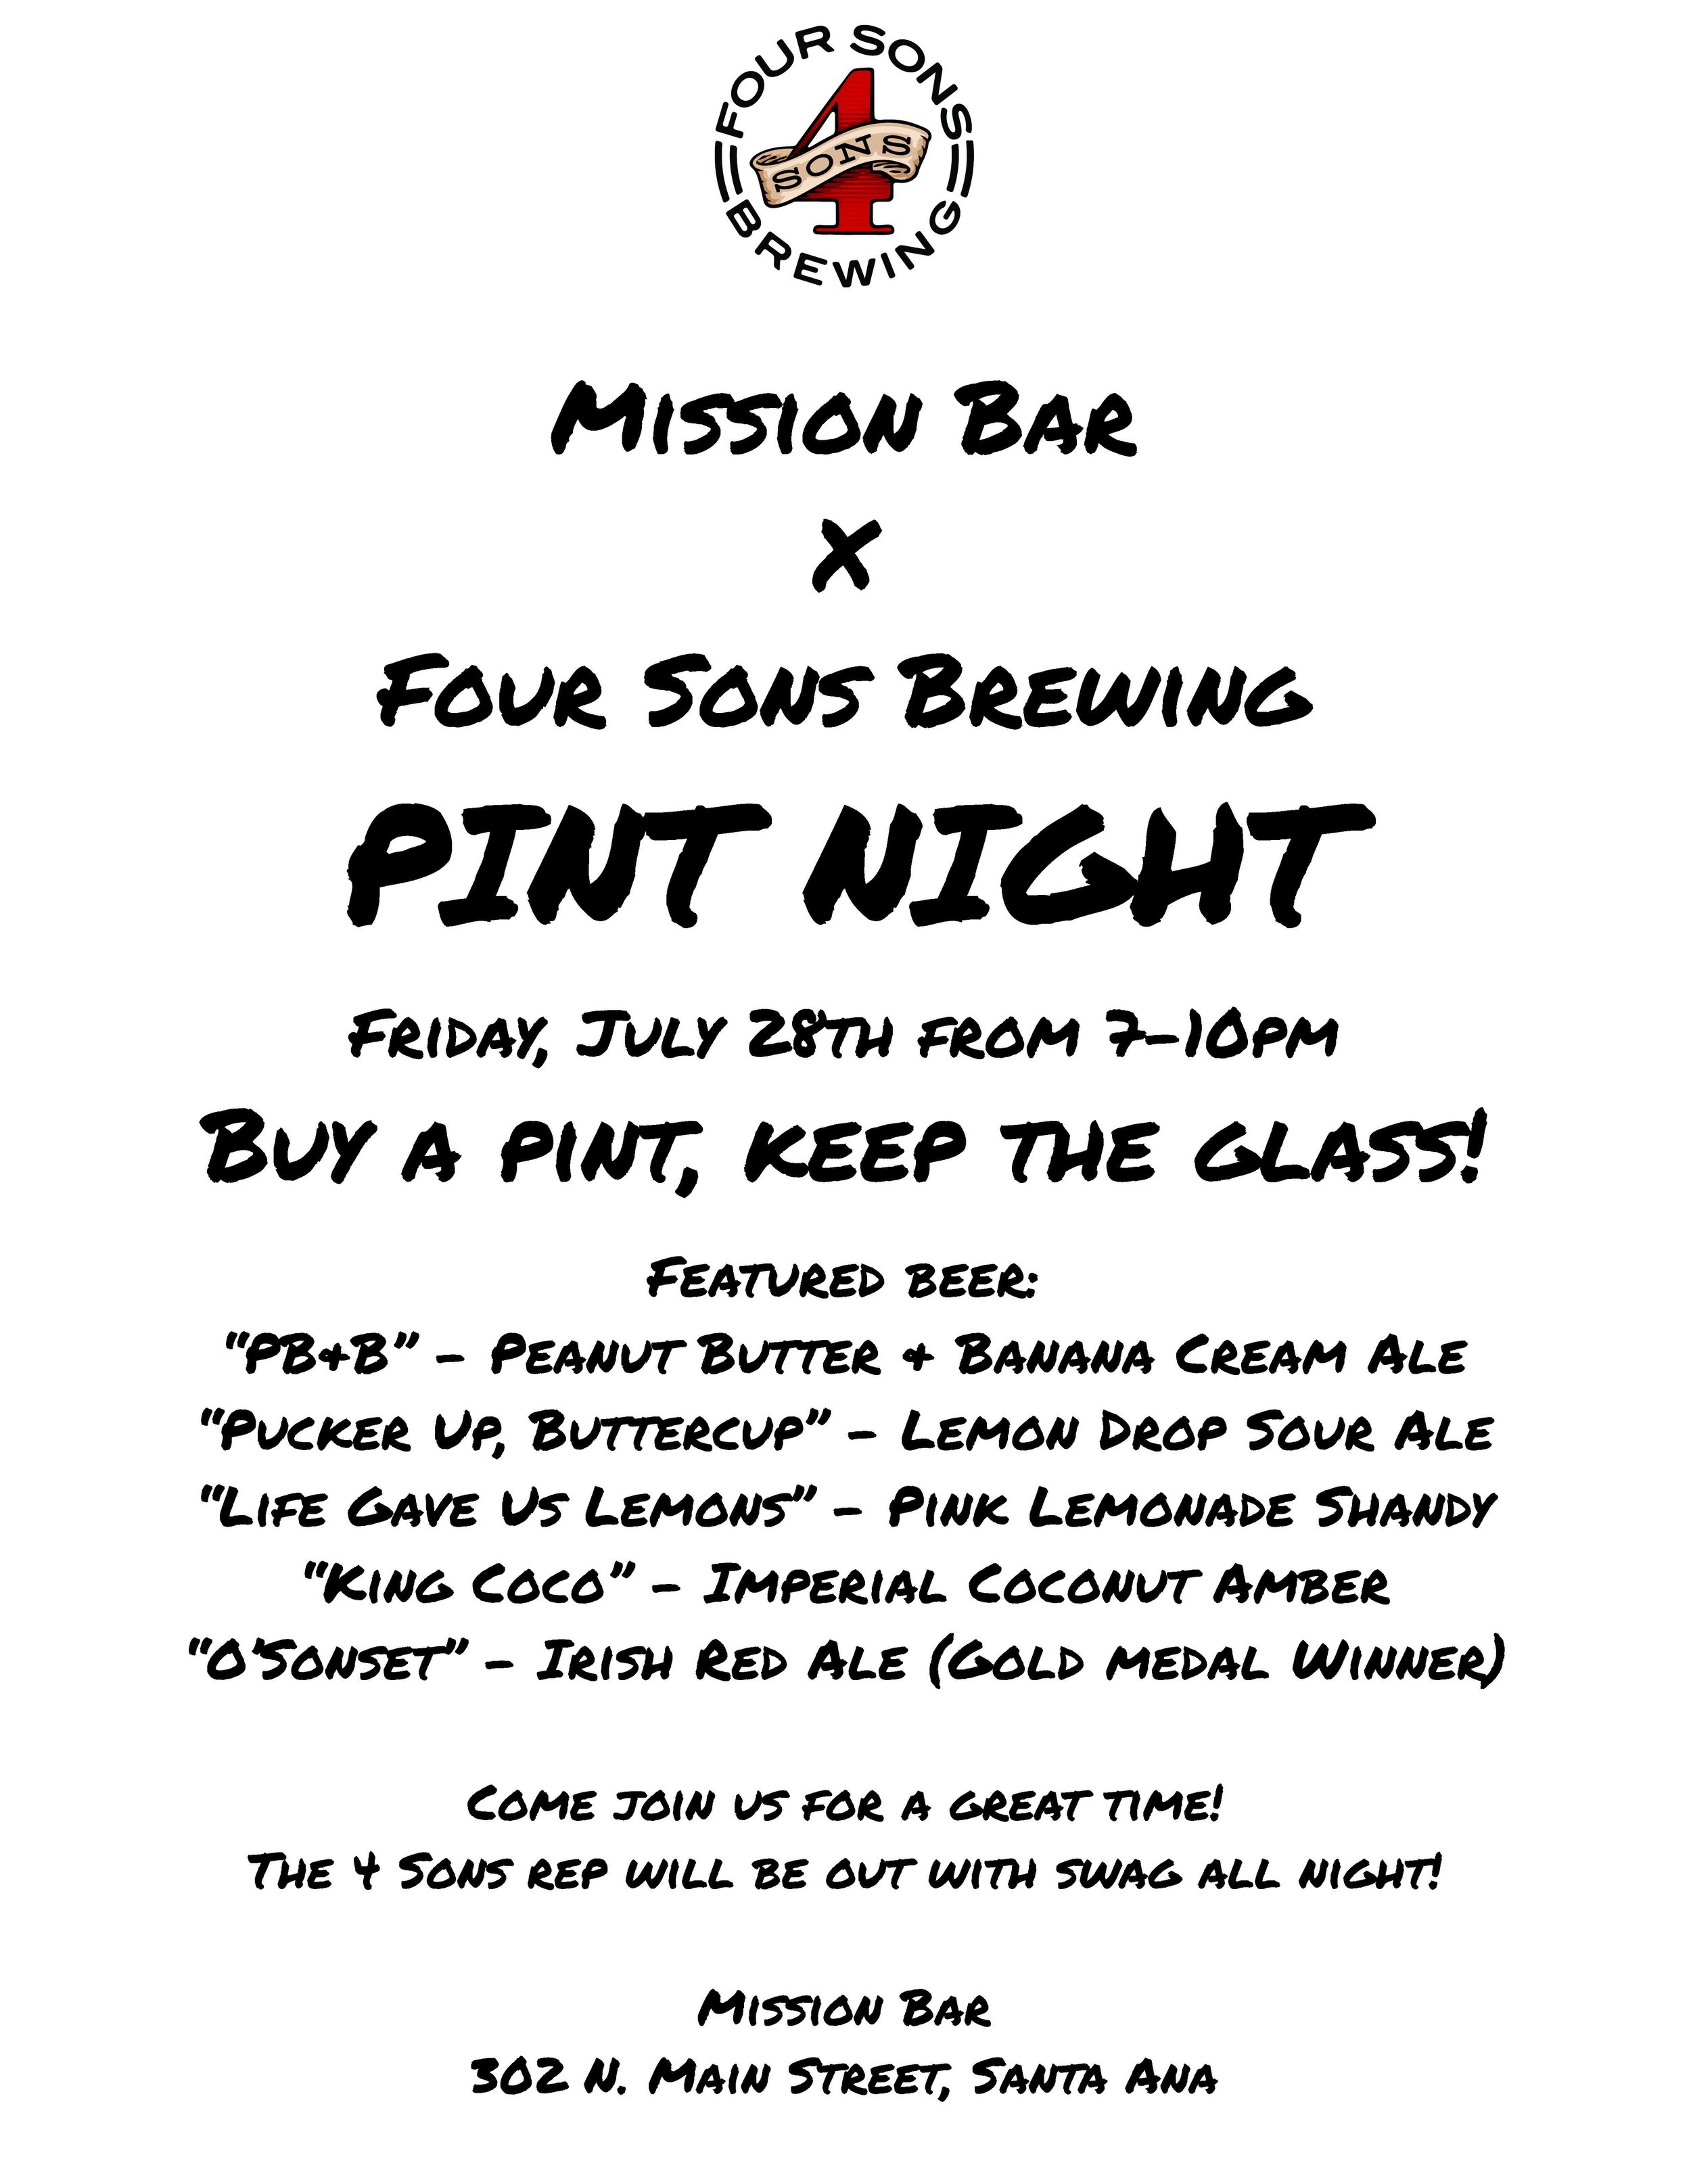 Mission Bar Flyer.jpg